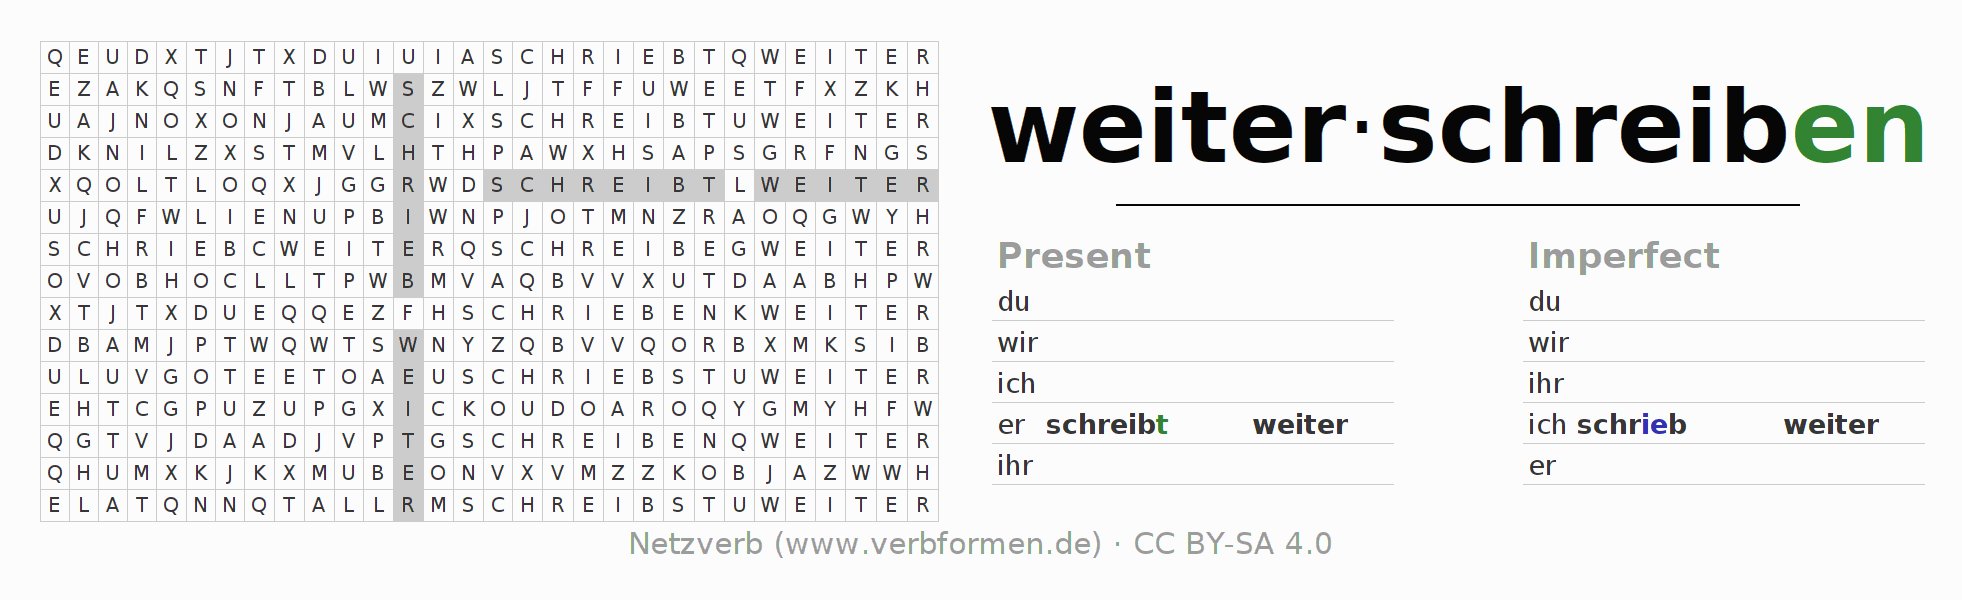 Word search puzzle for the conjugation of the verb weiterschreiben